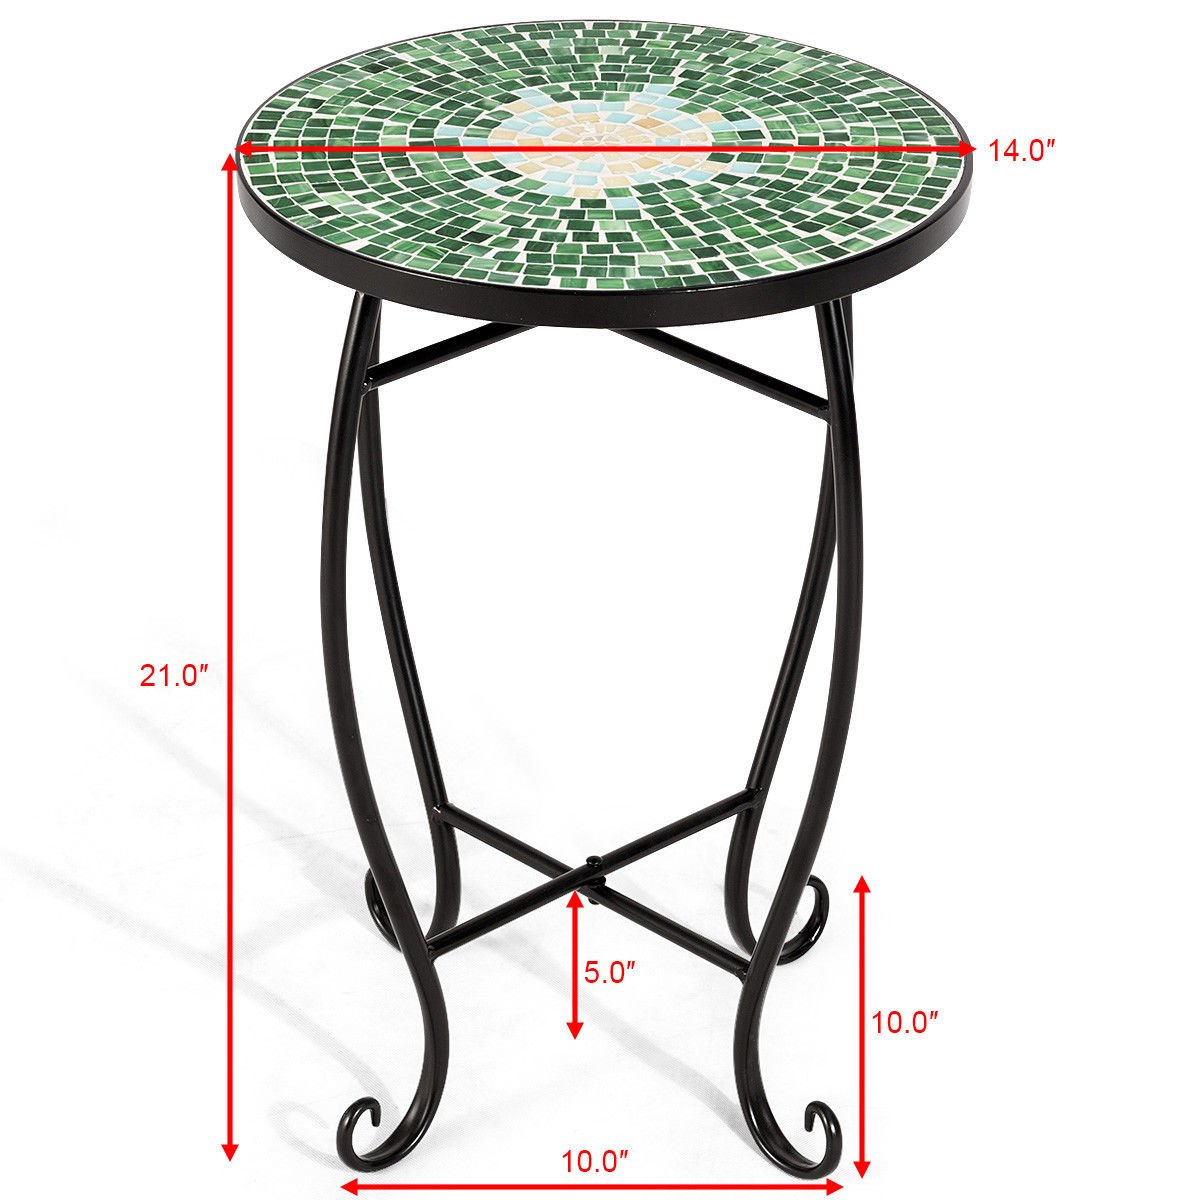 way outdoor indoor accent table plant stand scheme solar metal garden steel green chrome west elm off code coffee runner couches edmonton target windham furniture mat mid century